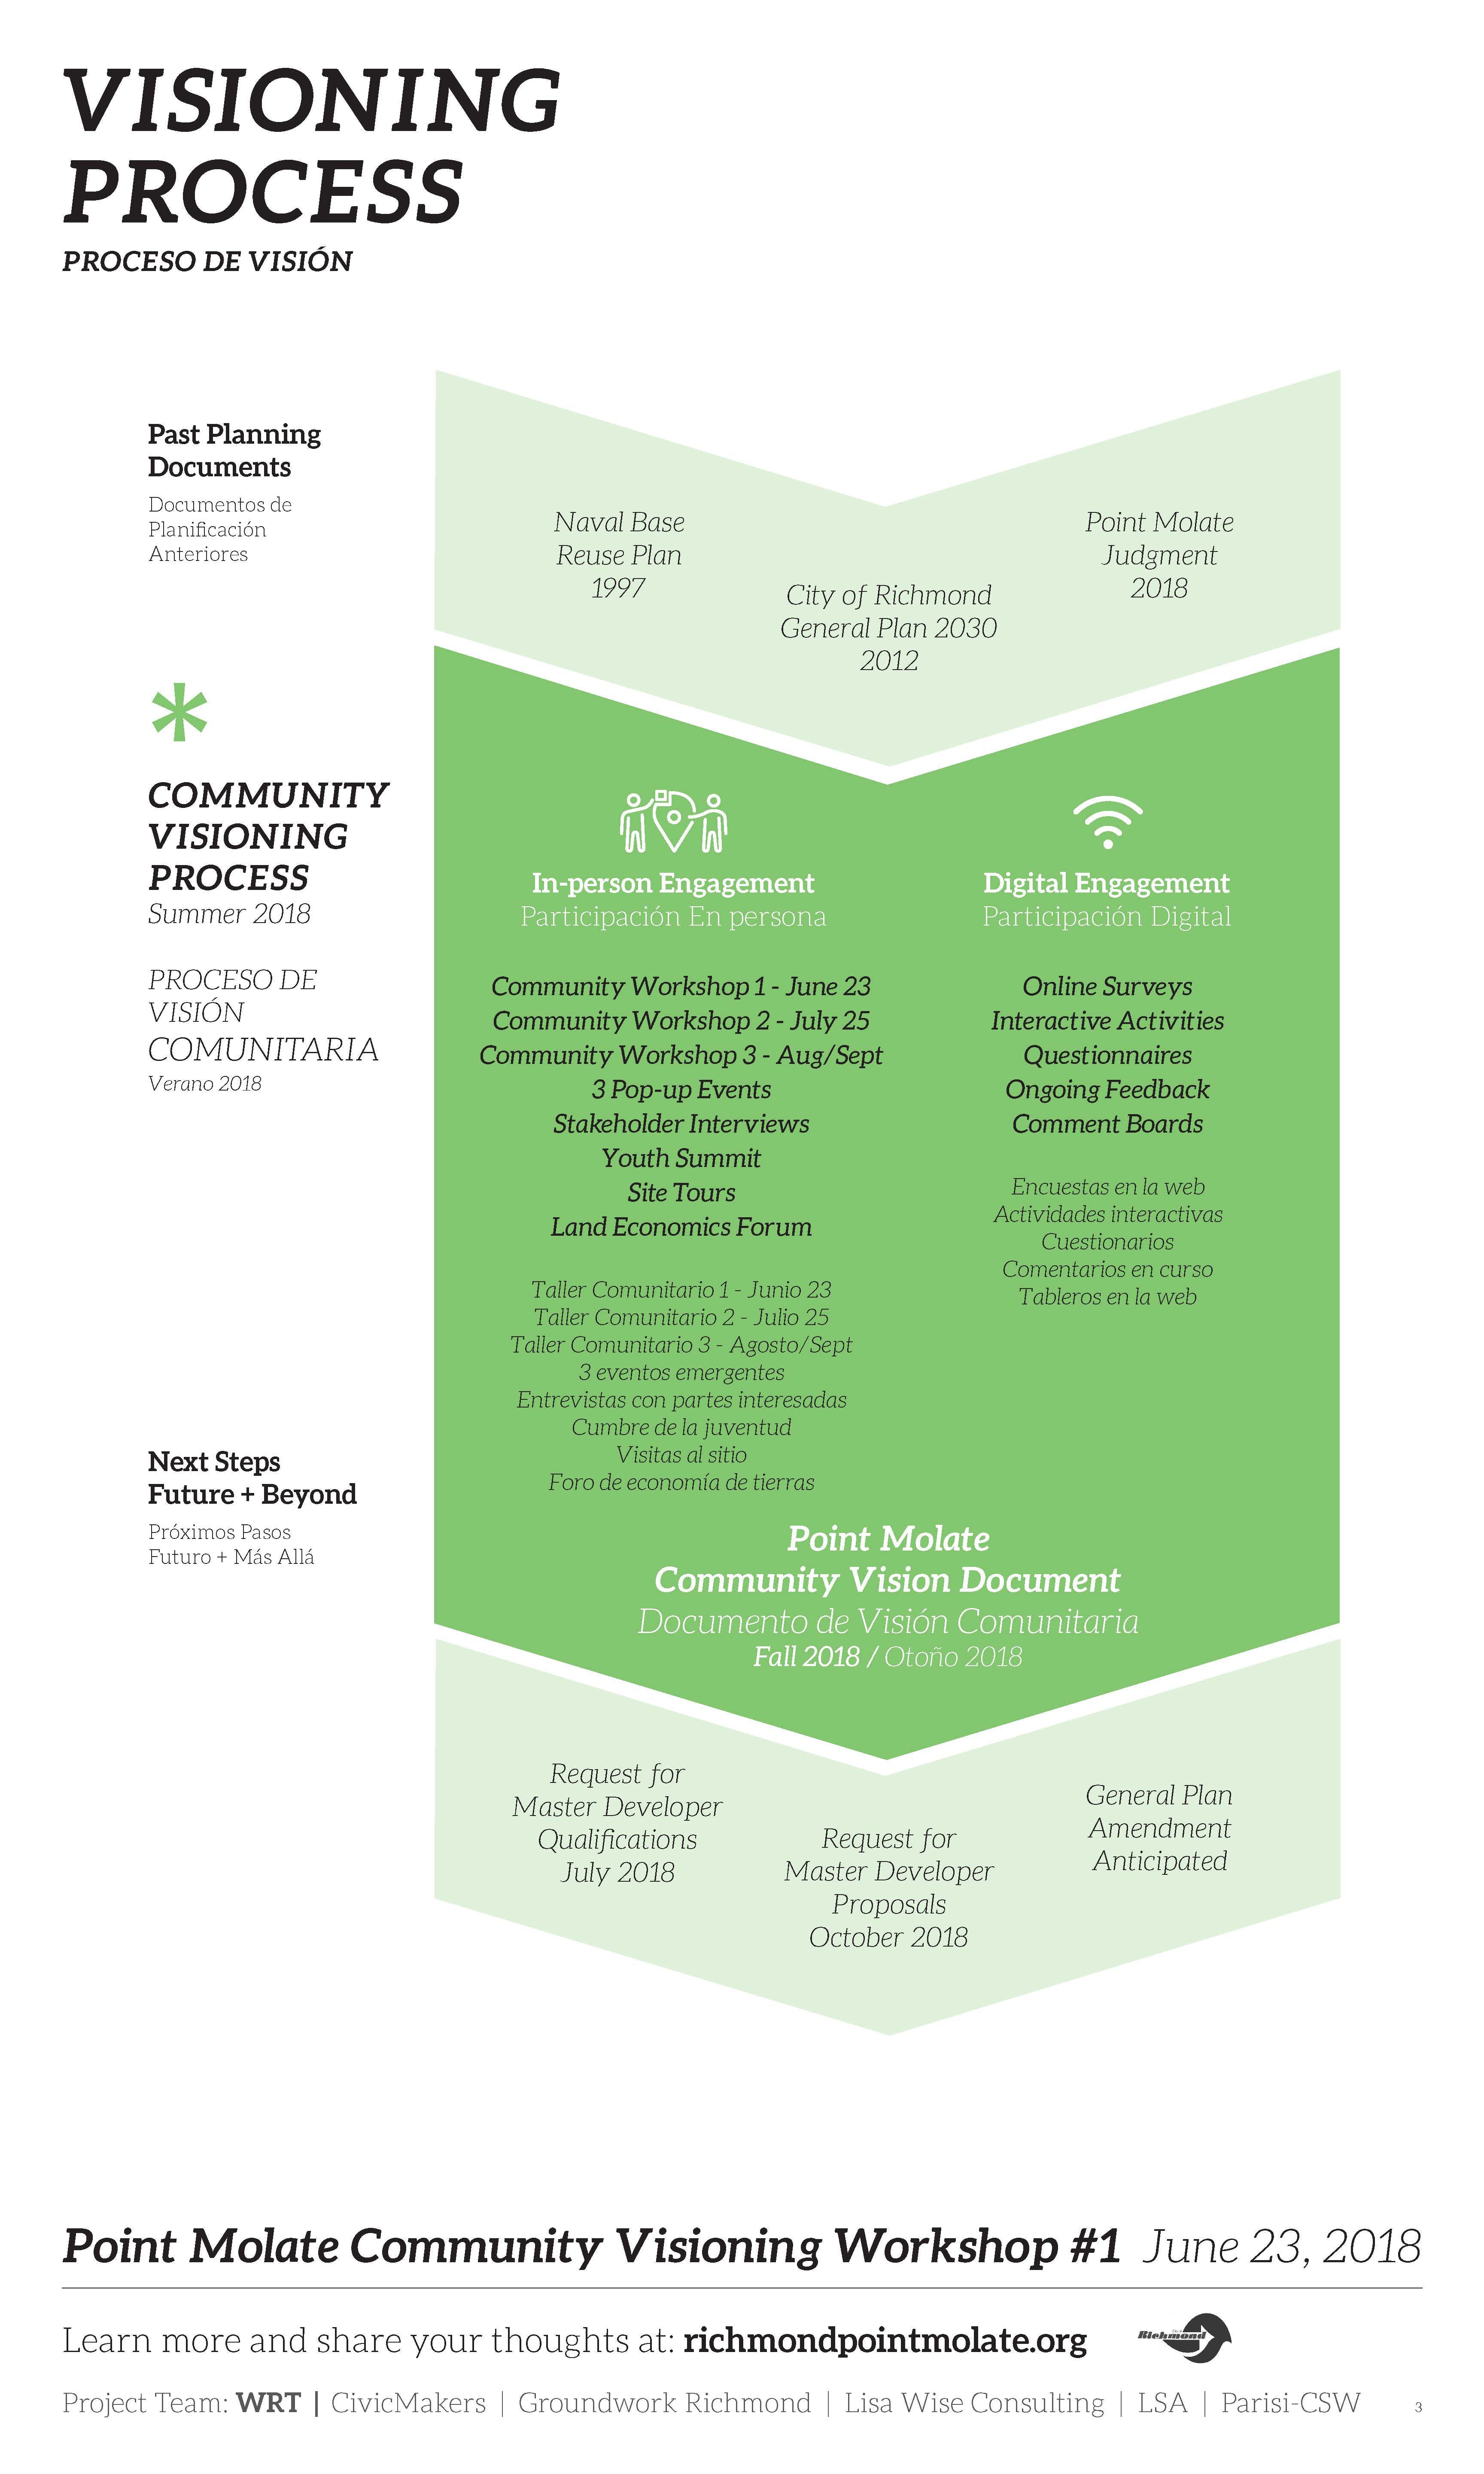 Point Molate Community Workshop #1: Visioning | Point Molate